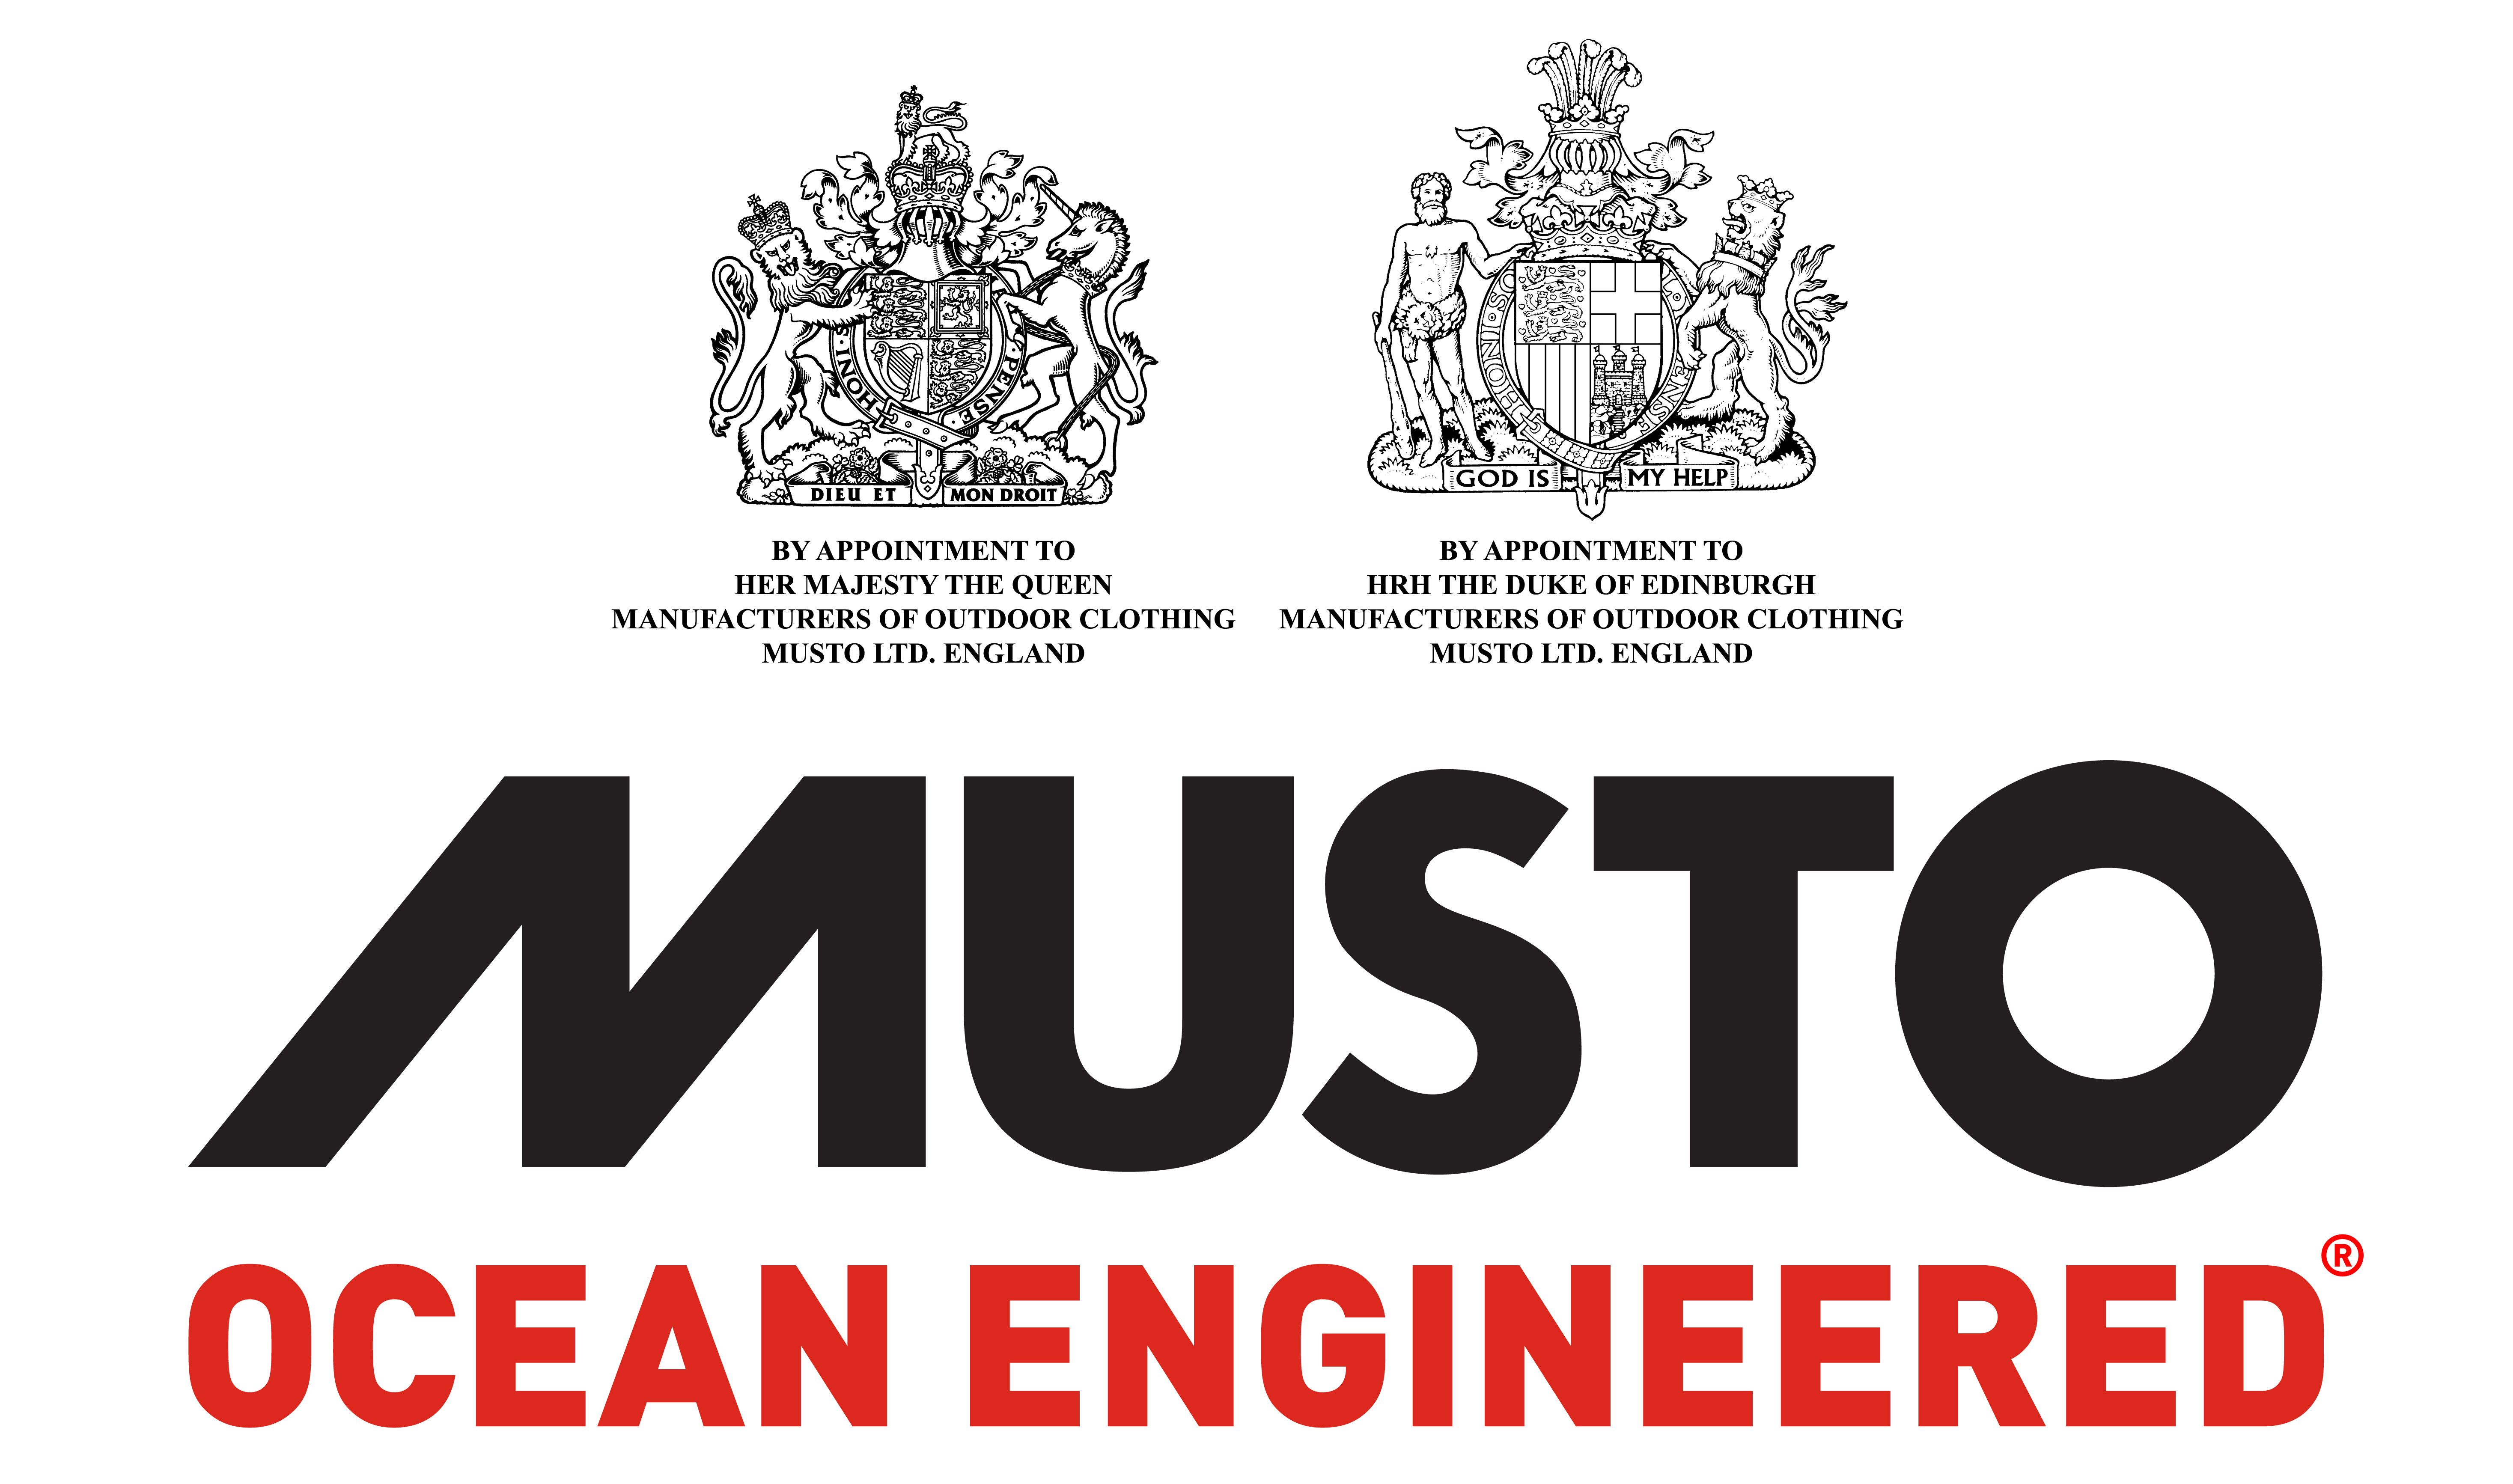 MUSTO FULL BRANDING BLACK ON WHITE